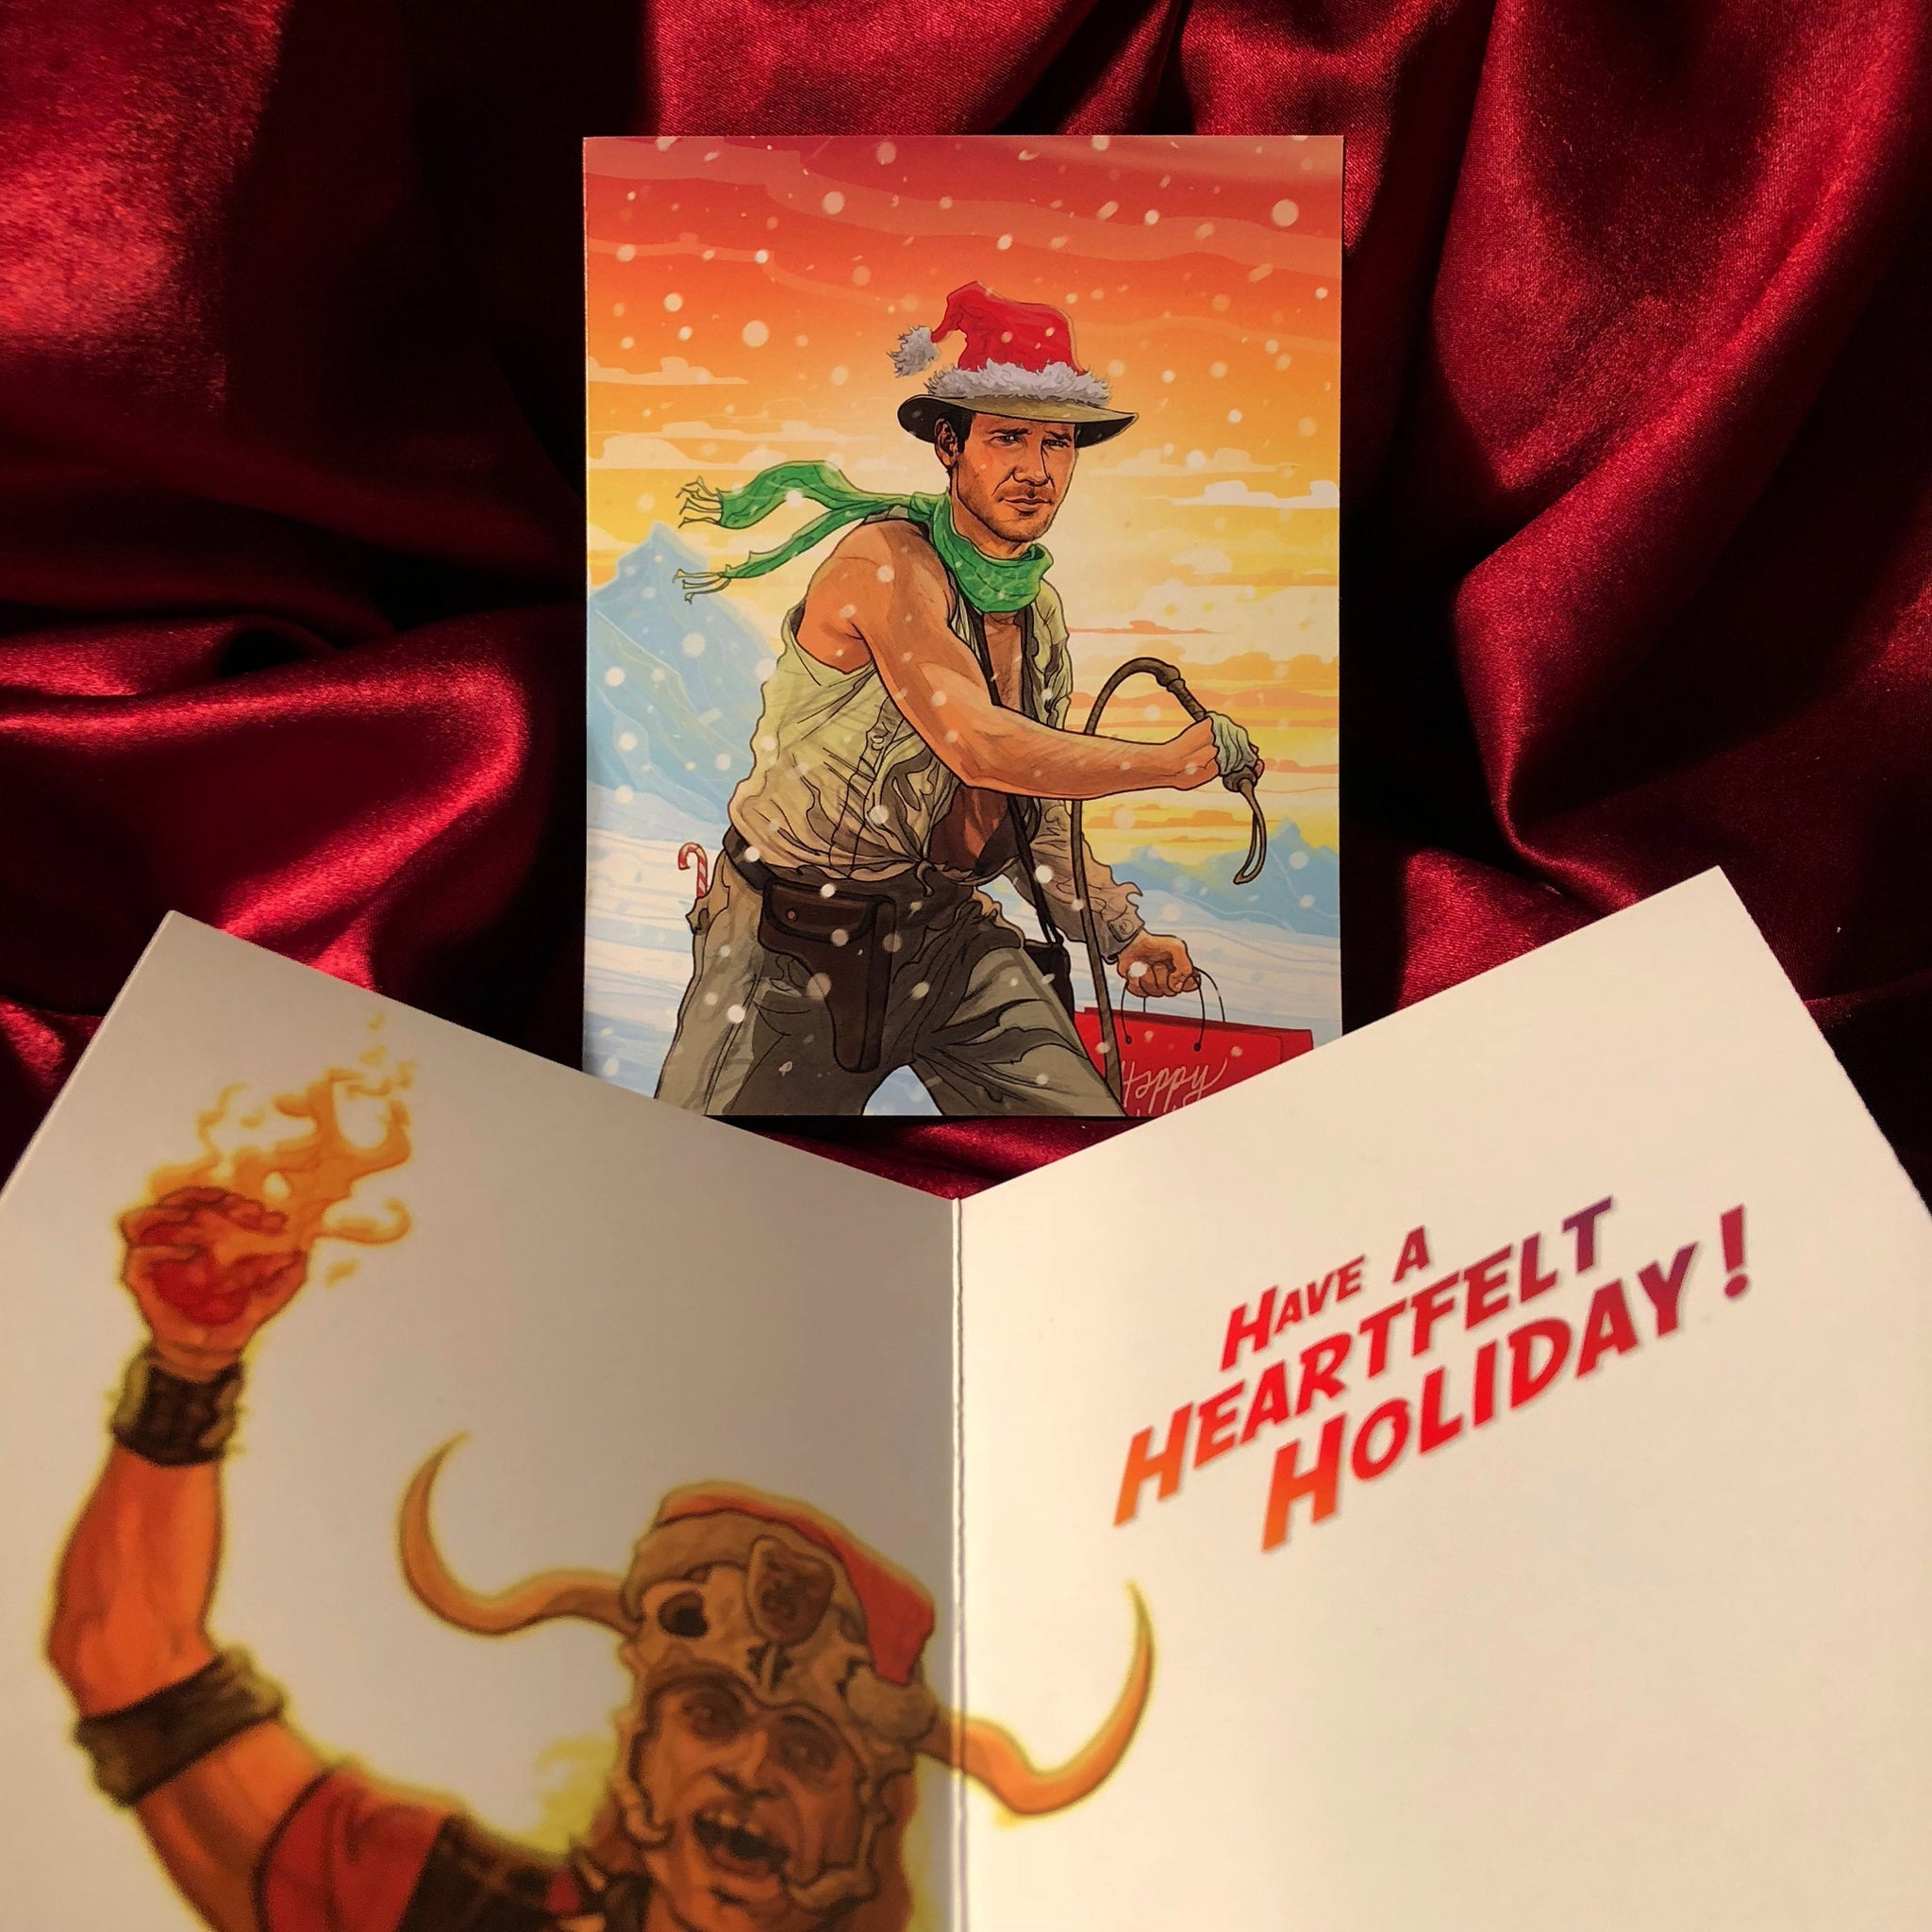 INDIANA JONES Temple of Doom CHRISTMAS Card!